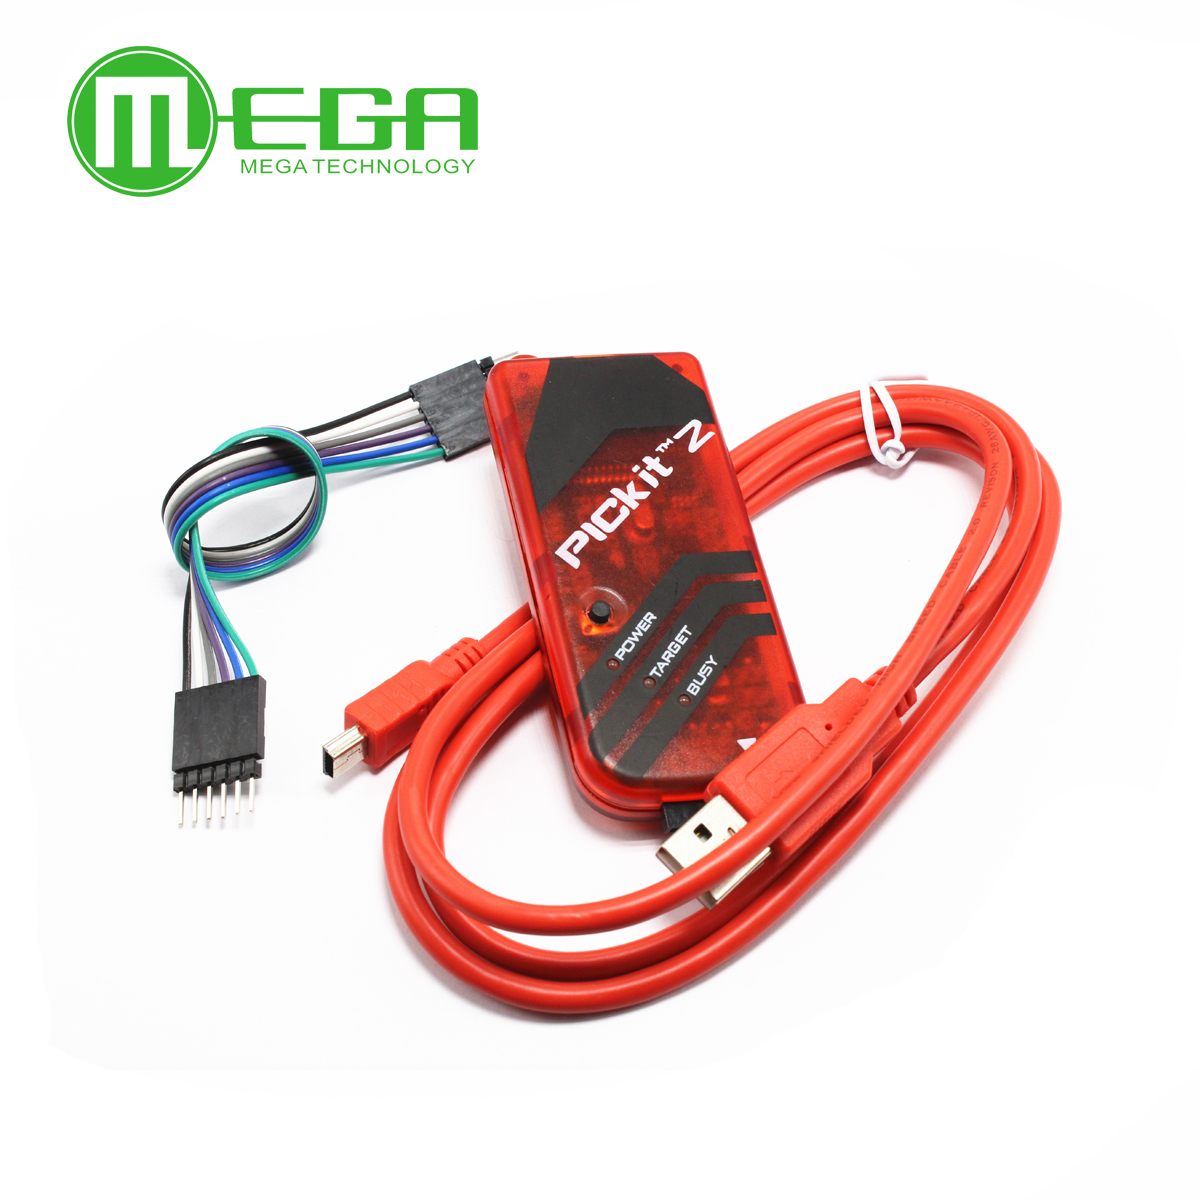 TD-ELECTRO PICKIT2 PIC Kit2 Simulator PICKit 2 Programmer Emluator Red Color w//USB Cable Dupond Wire